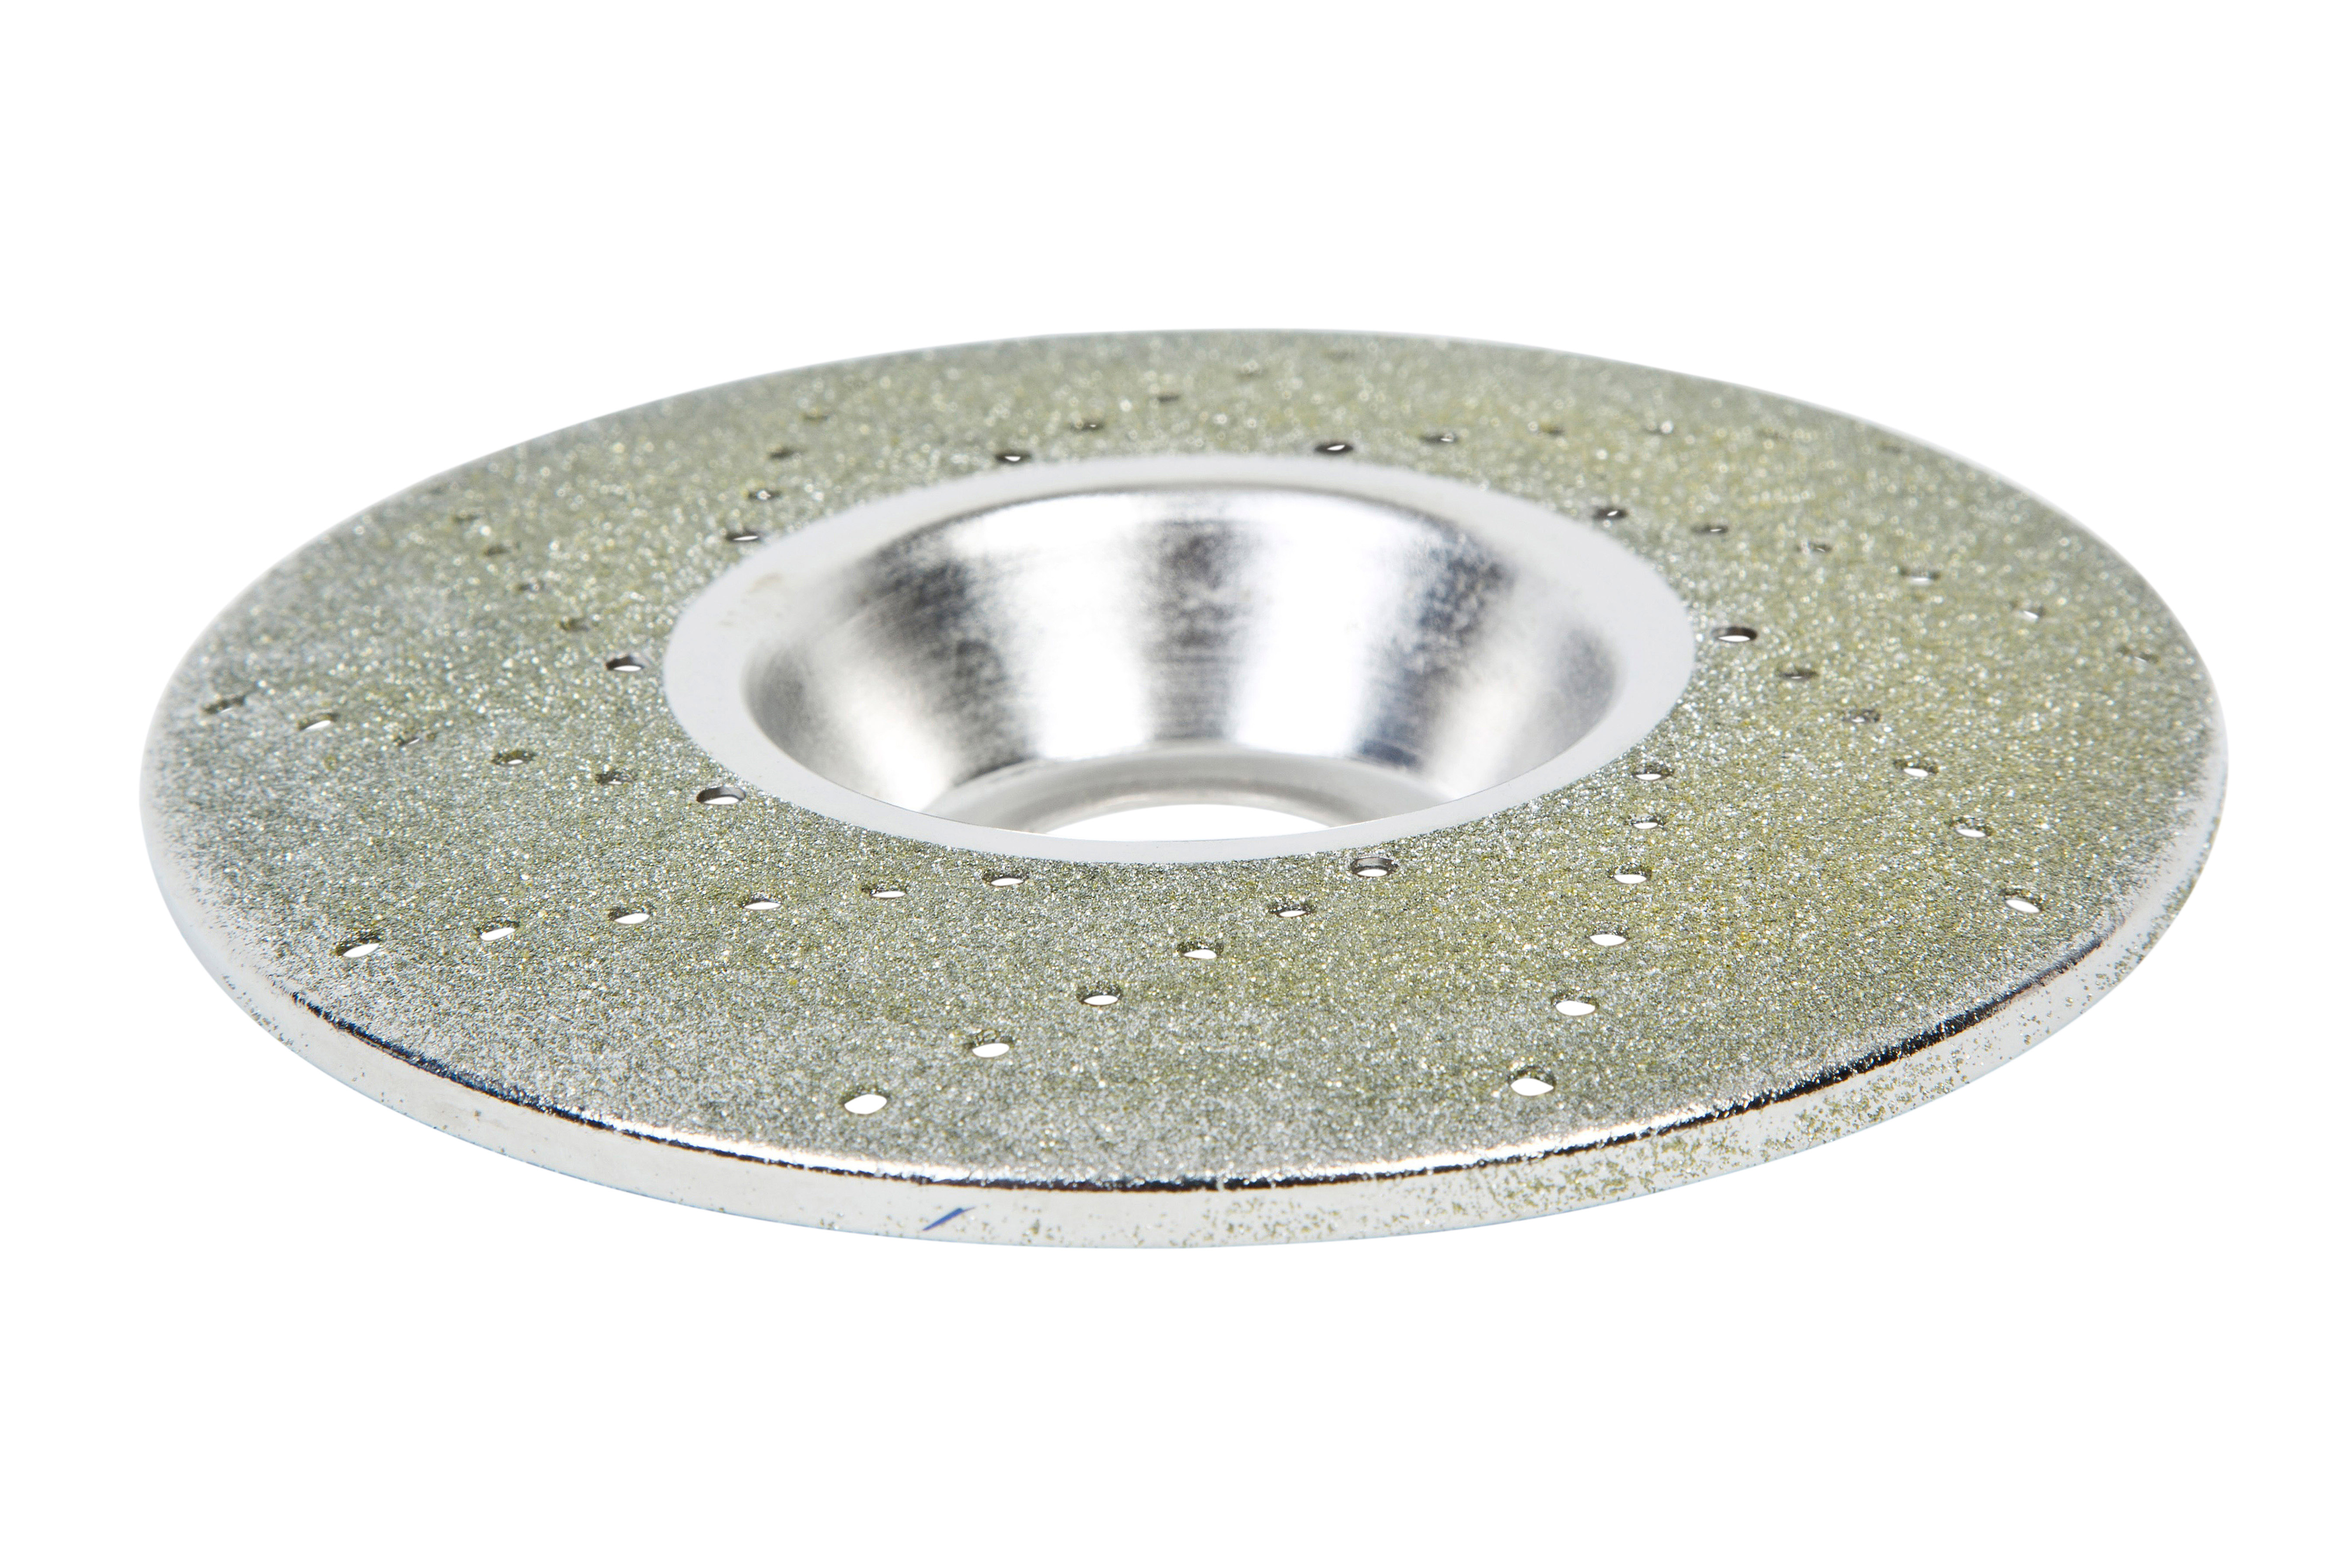 Grinding Disc Ats Diamond Tools 115mm Electroplated Diamond Grinding Disc